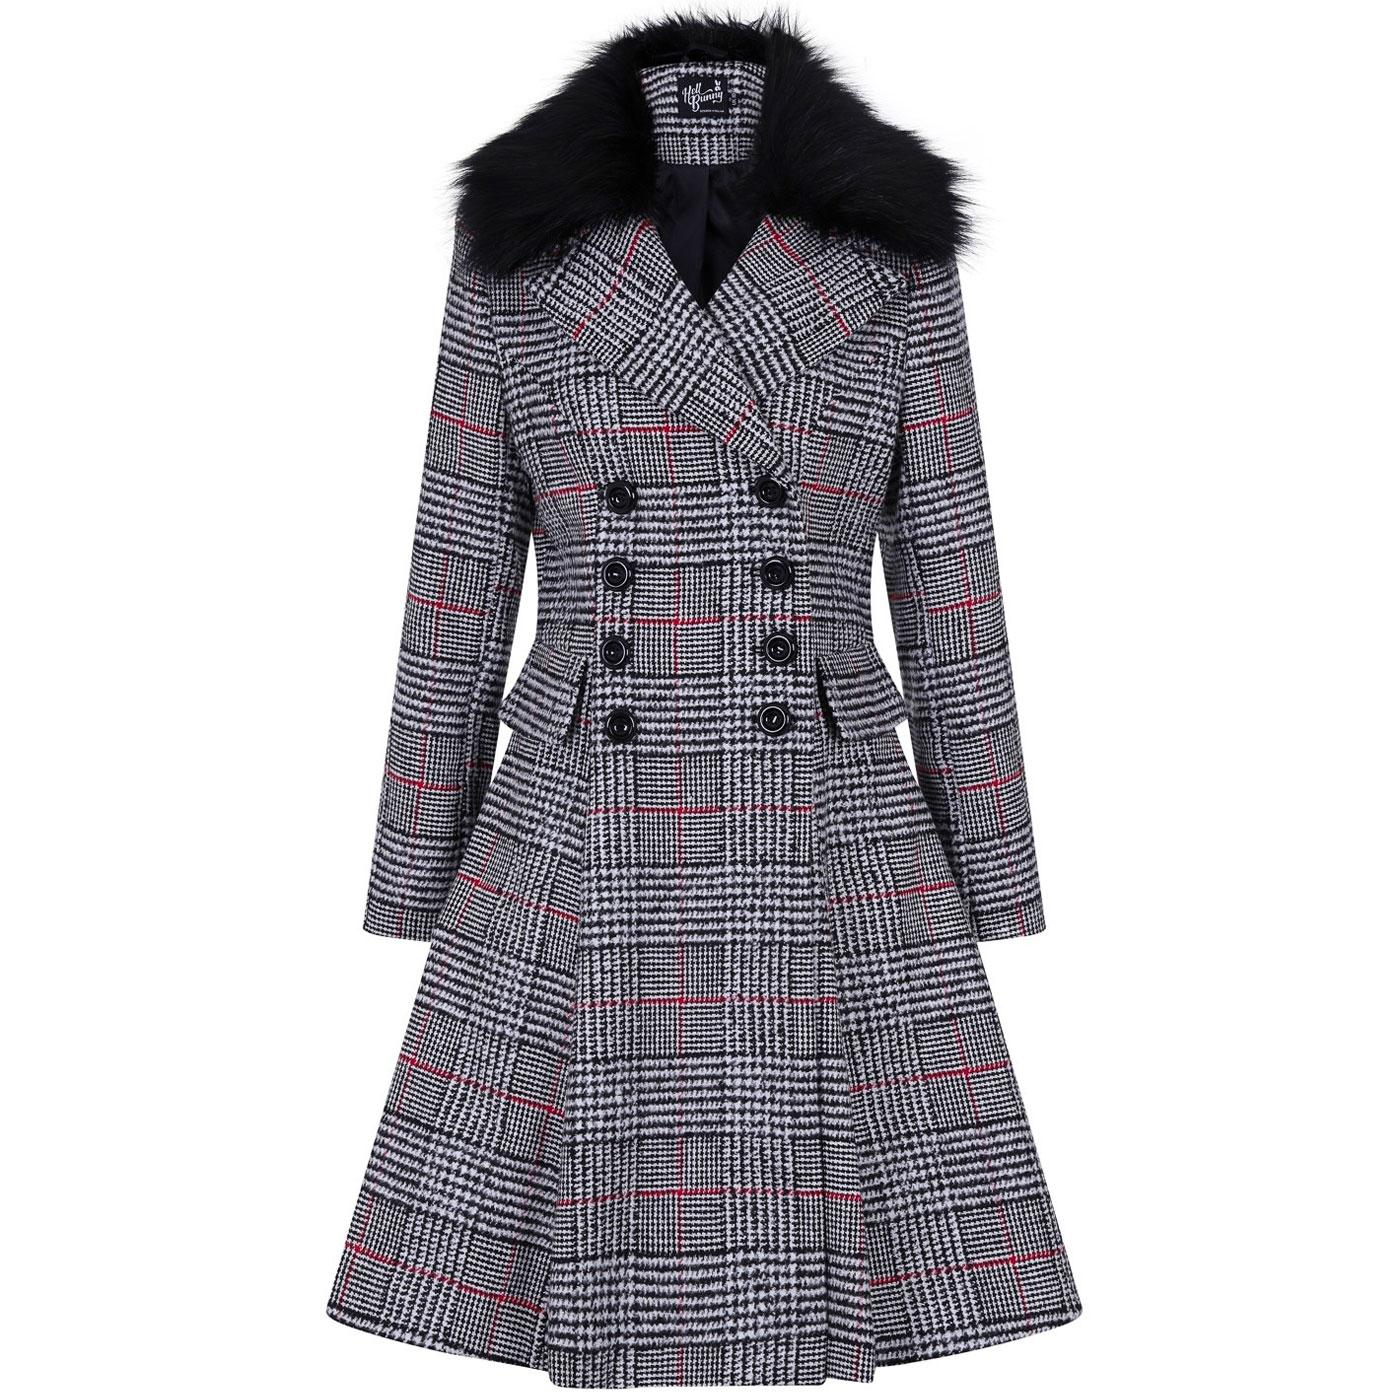 Pascale HELL BUNNY Vintage Check Winter Coat